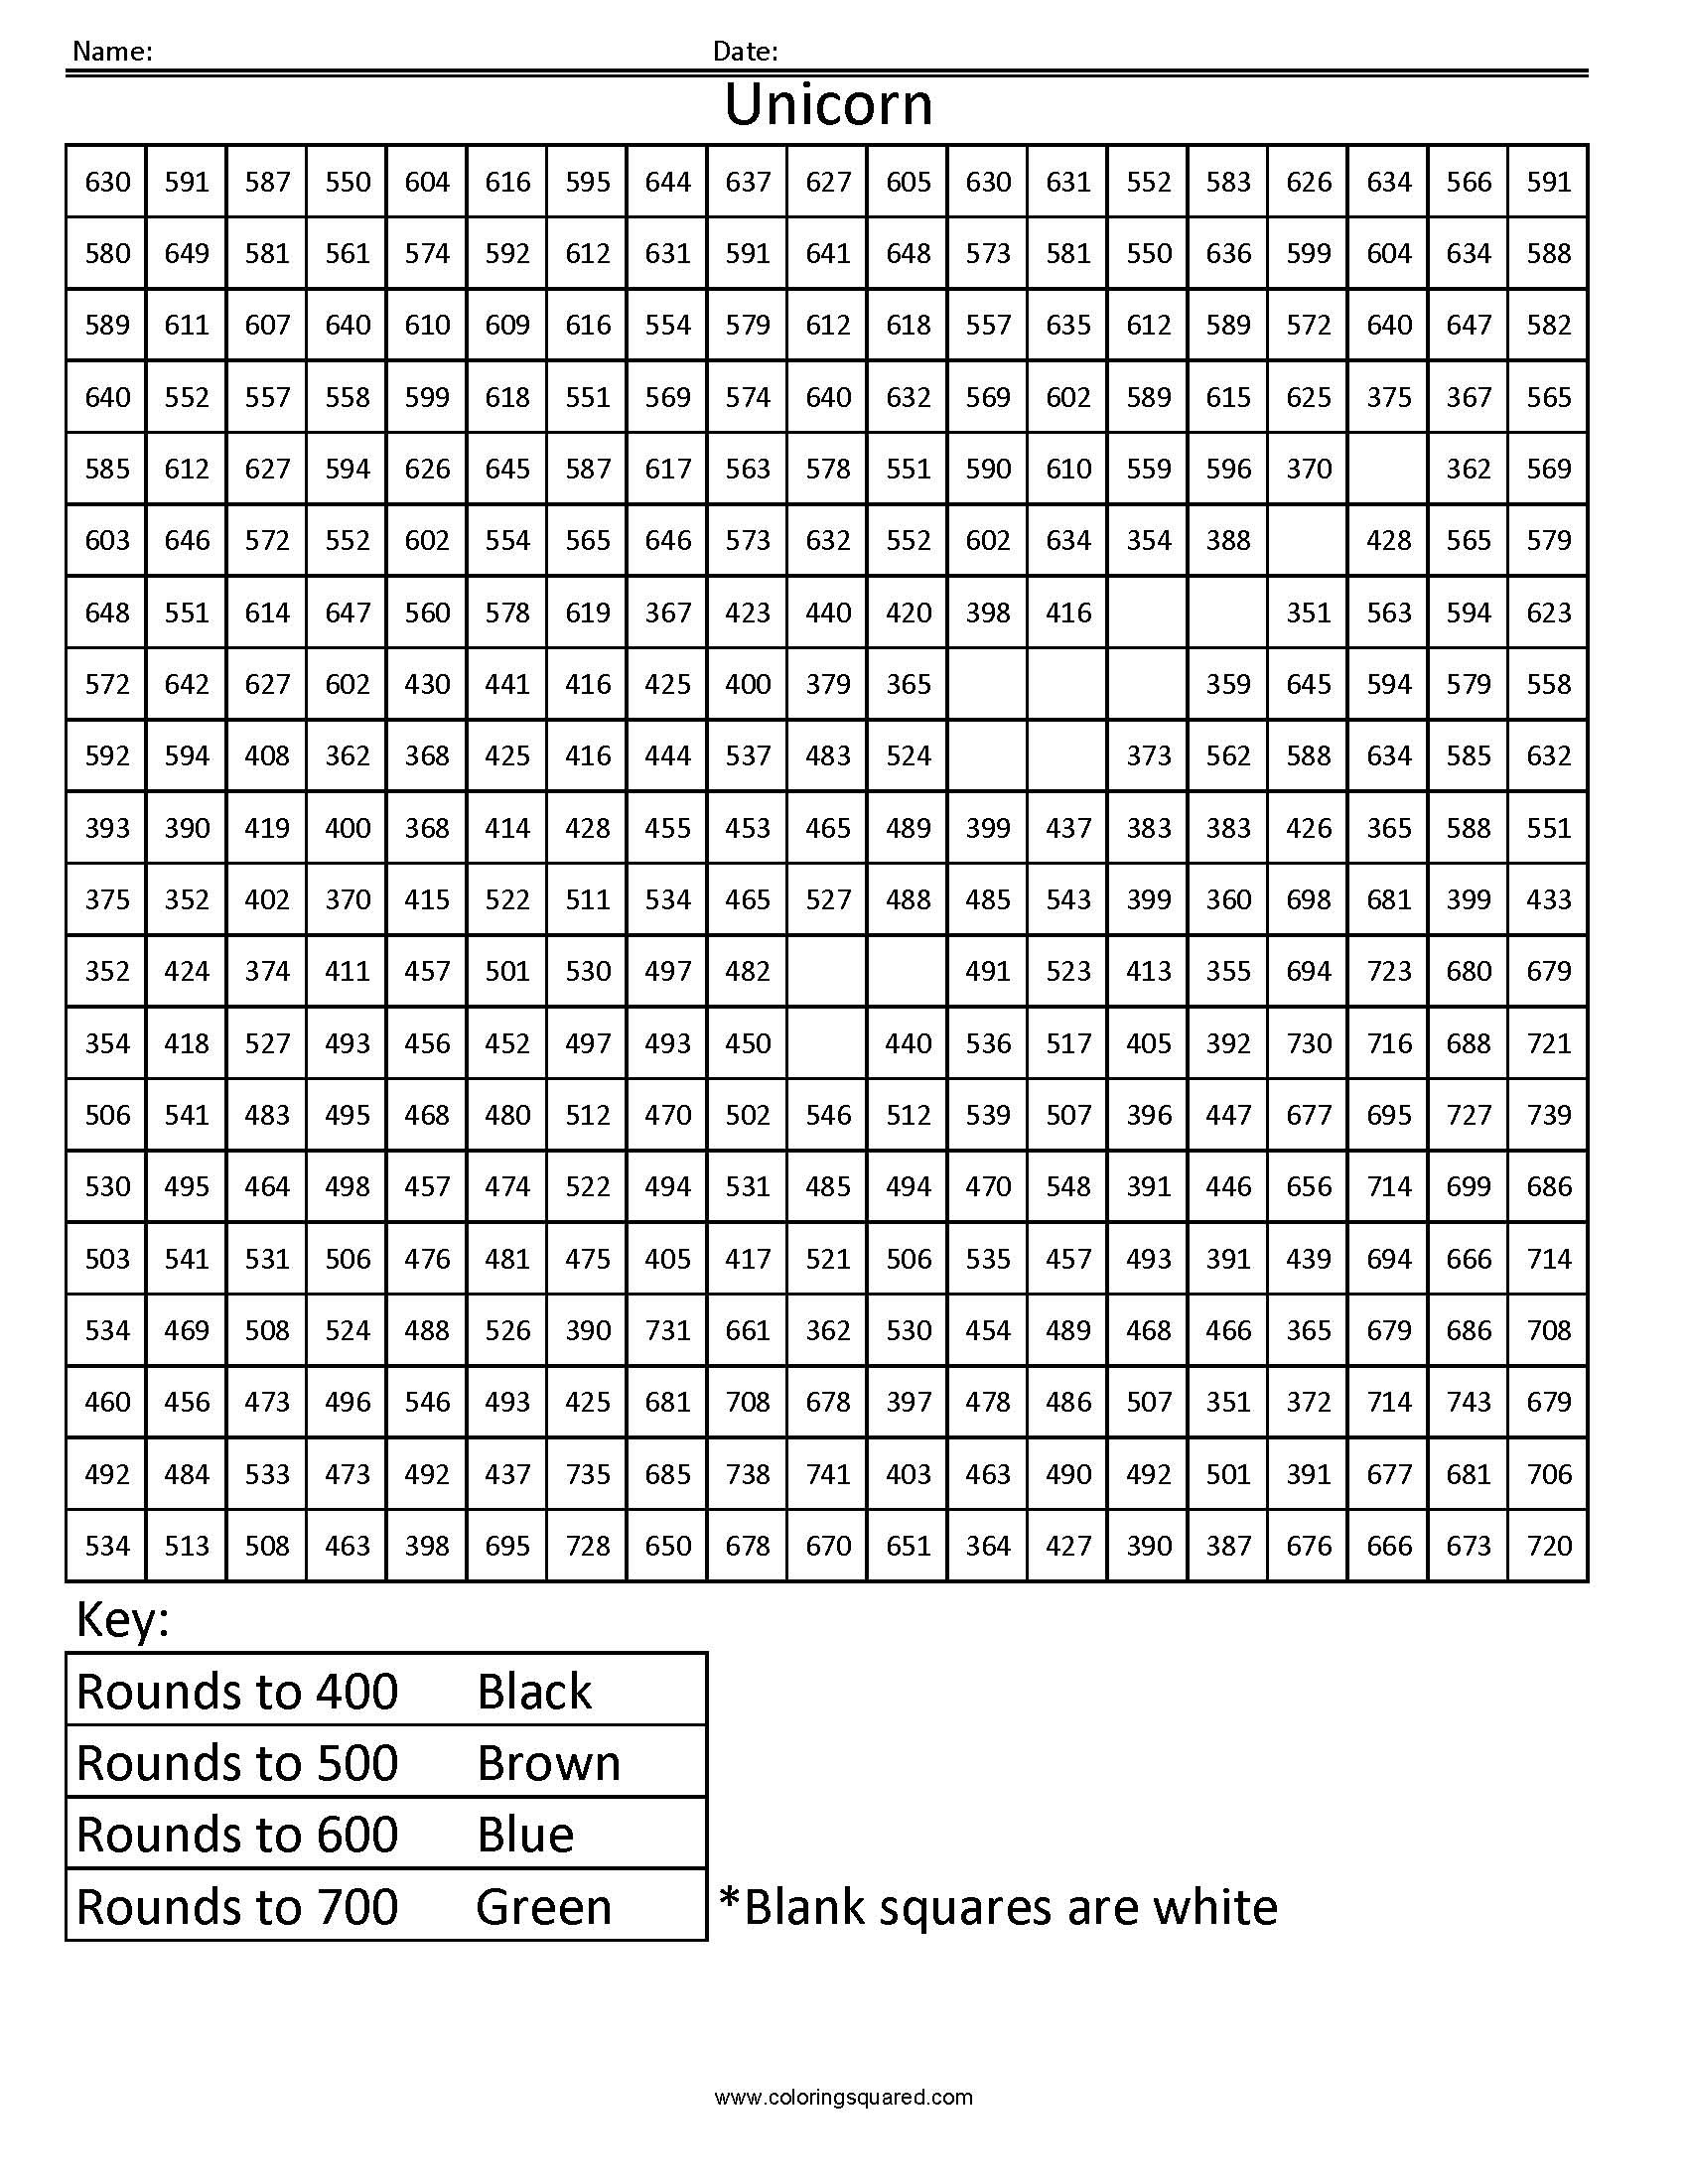 Math Mystery Picture Worksheets Unicorn Rounding Hundreds Place Coloring Squared